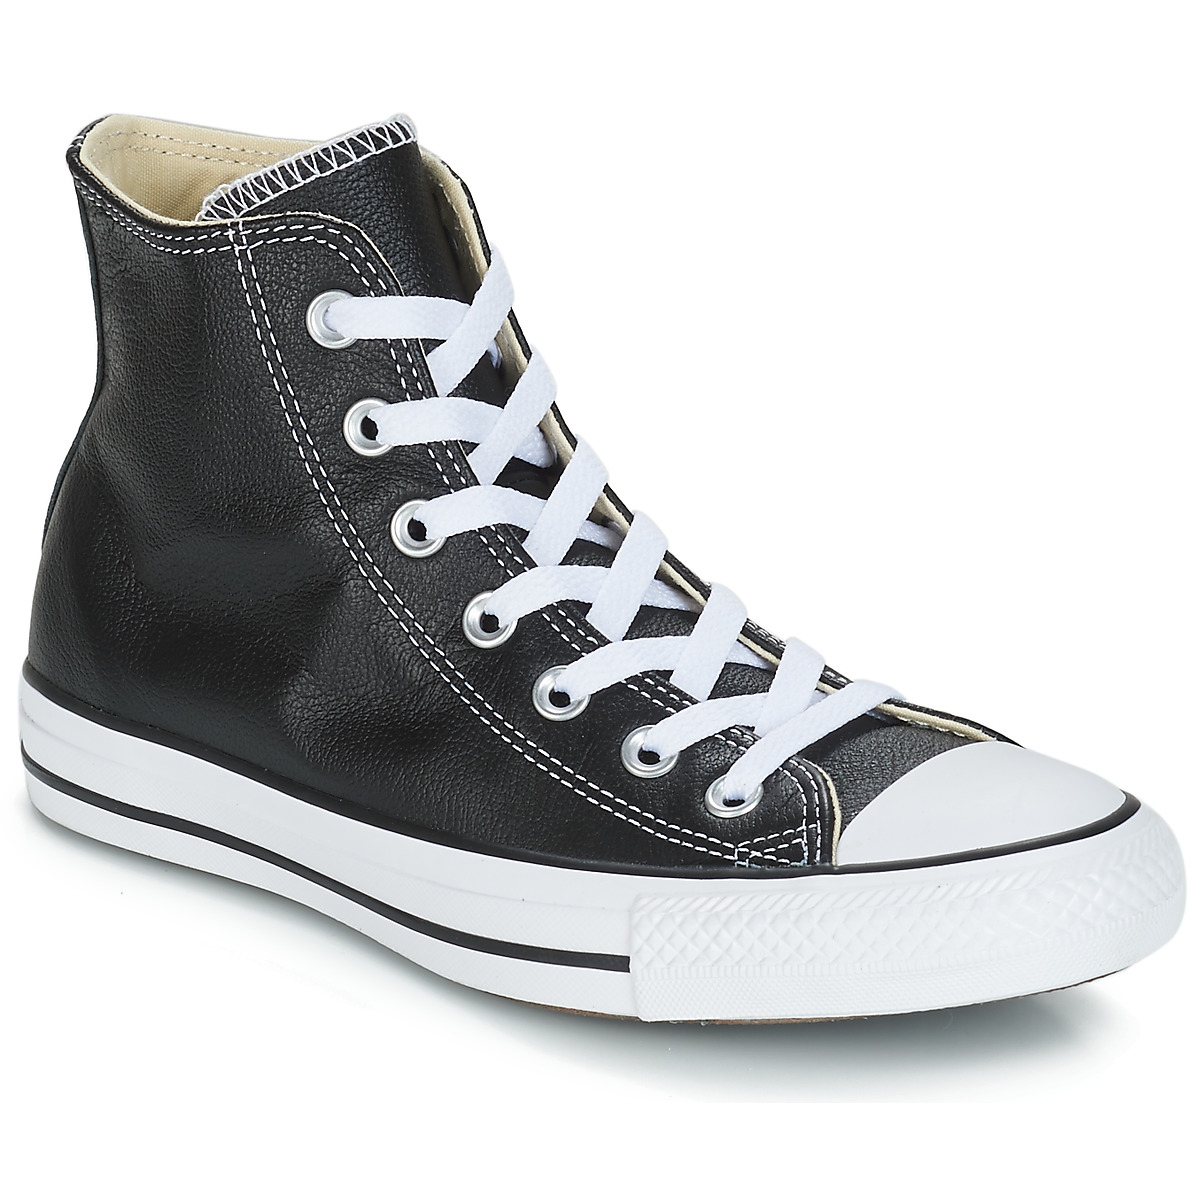 Converse Chuck Taylor All Star CORE LEATHER HI Black